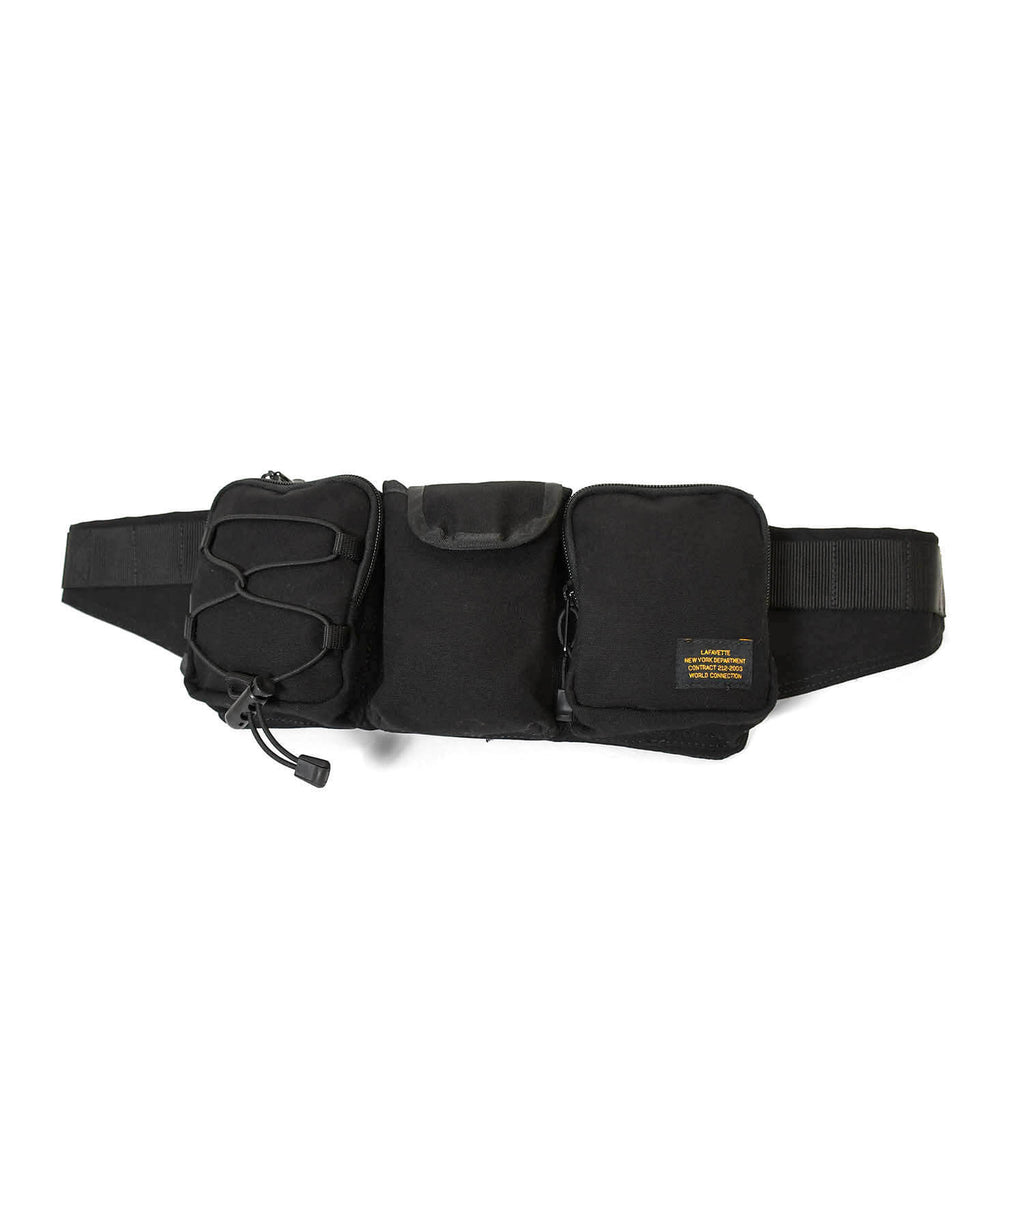 MILITARY WAIST BAG LS211502 BLACK